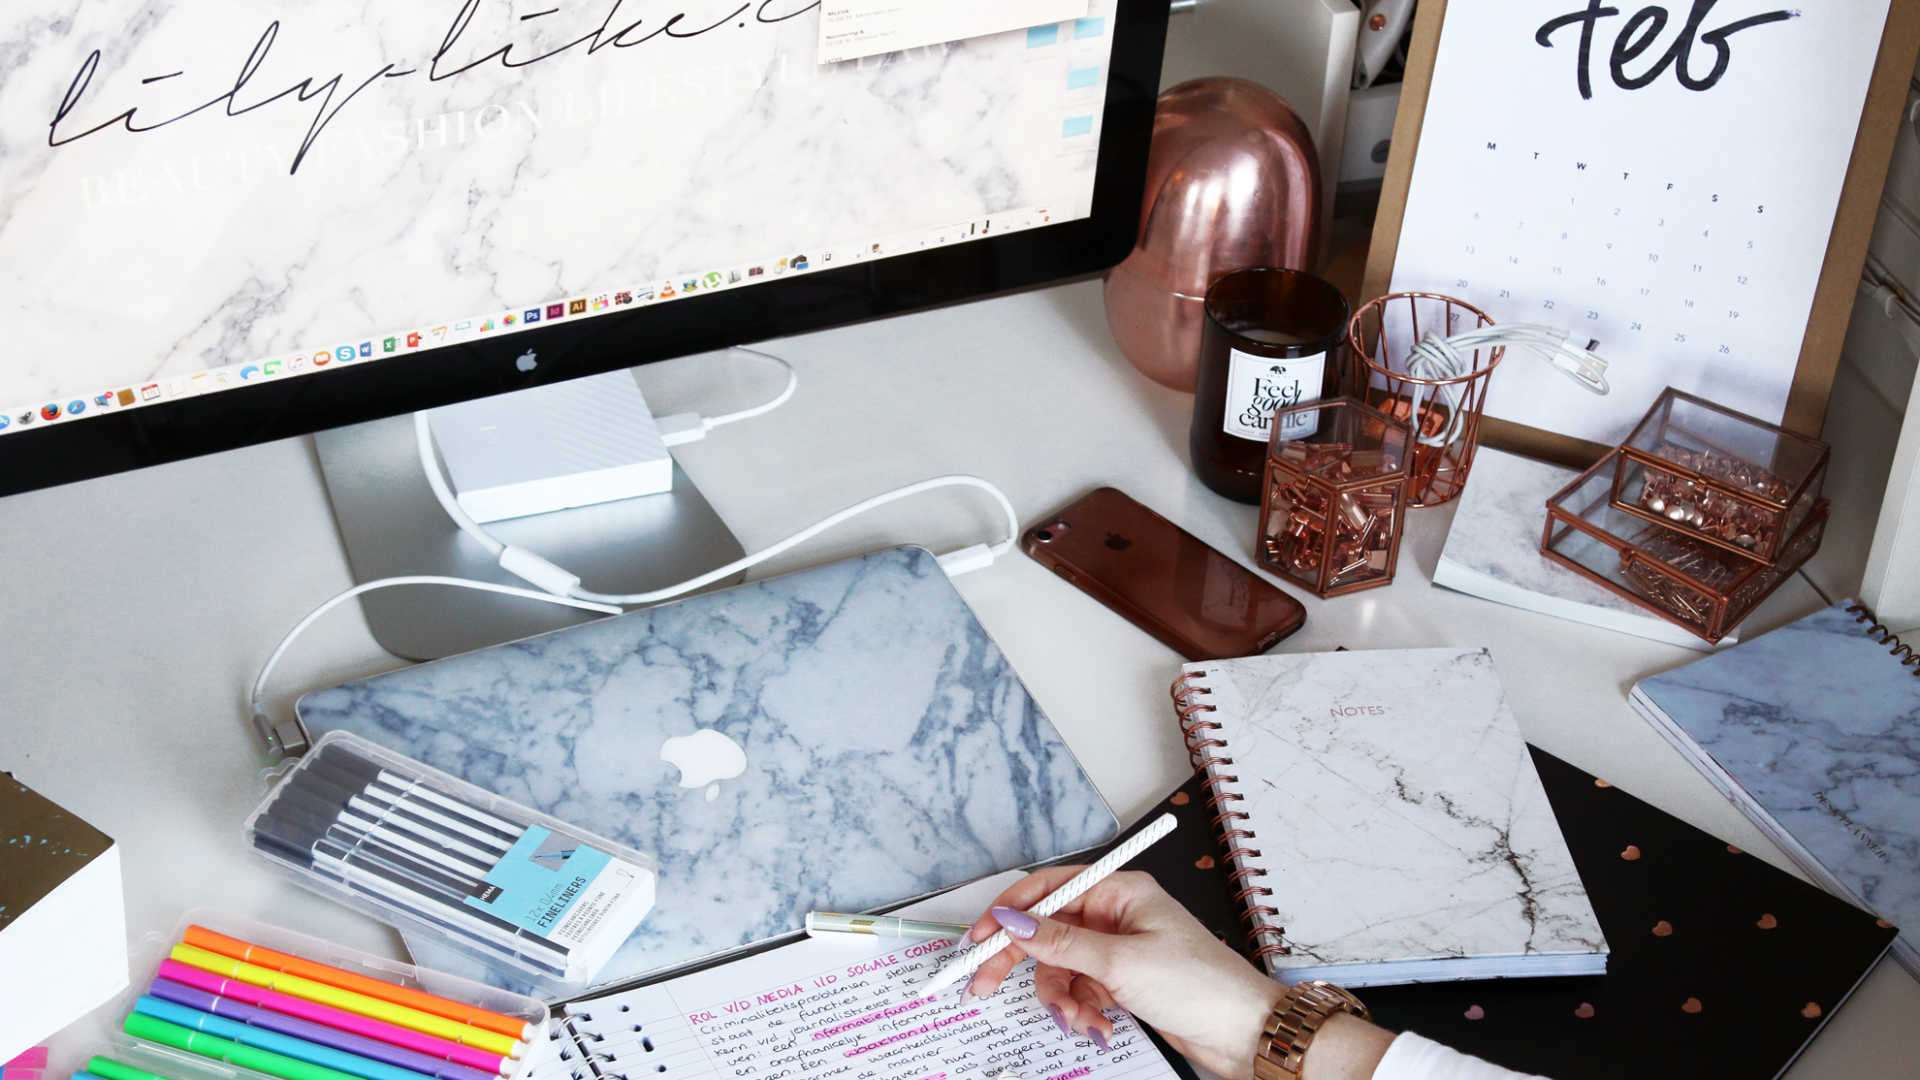 5 Tips For Being More Productive After Law School/University